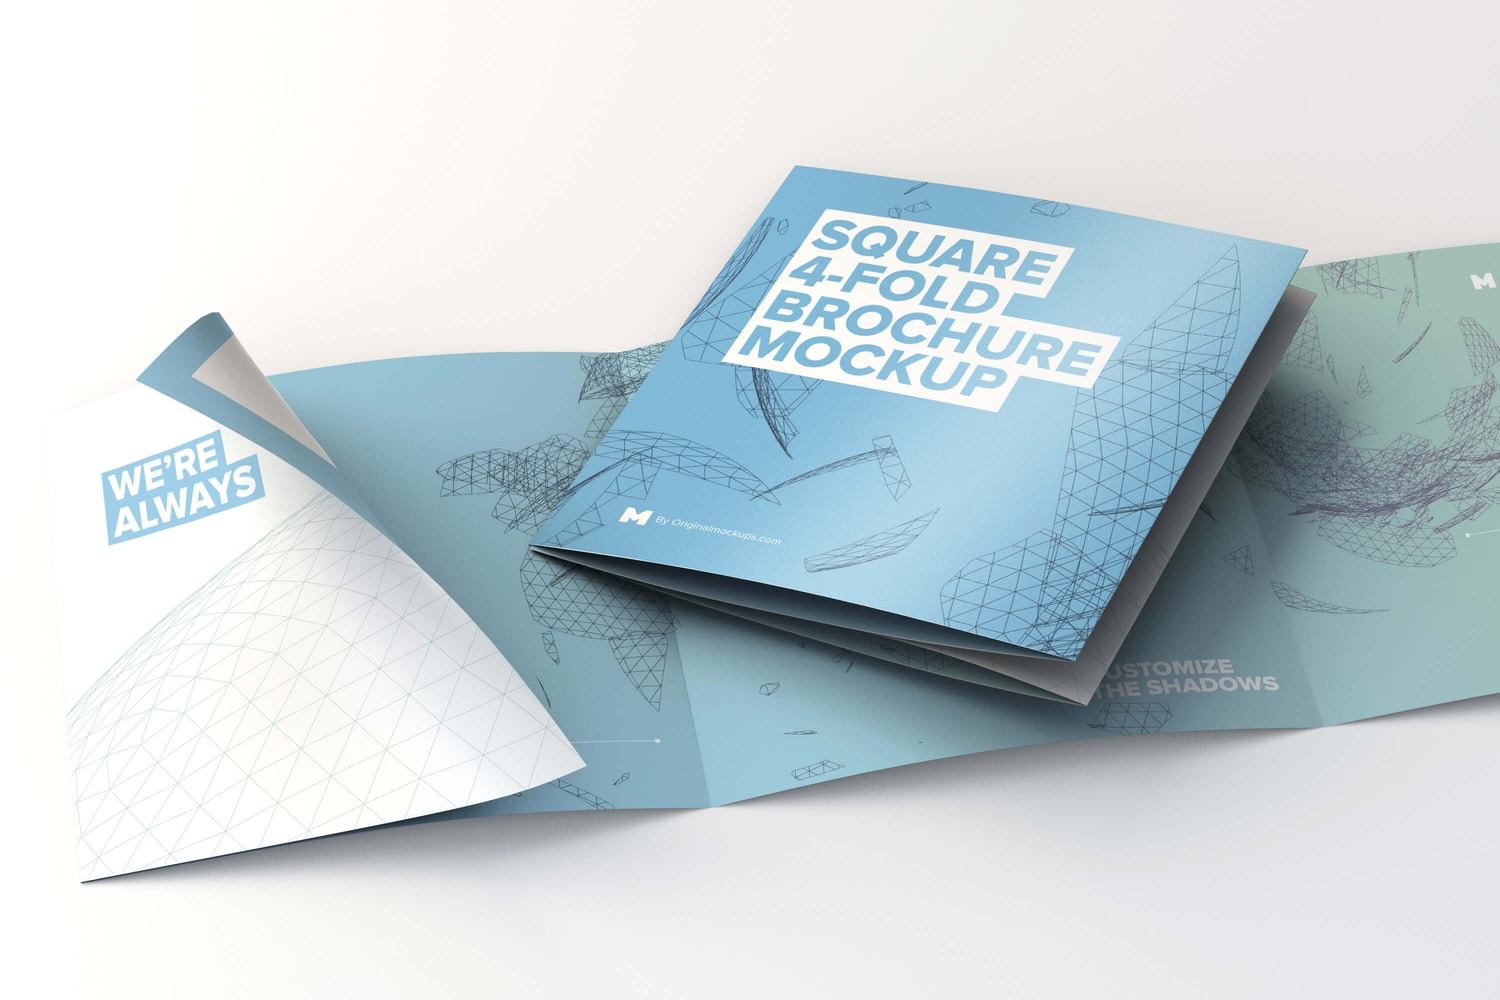 Folded and Unfolded Square 4-Fold-Brochure Mockup por Original Mockups en Original Mockups